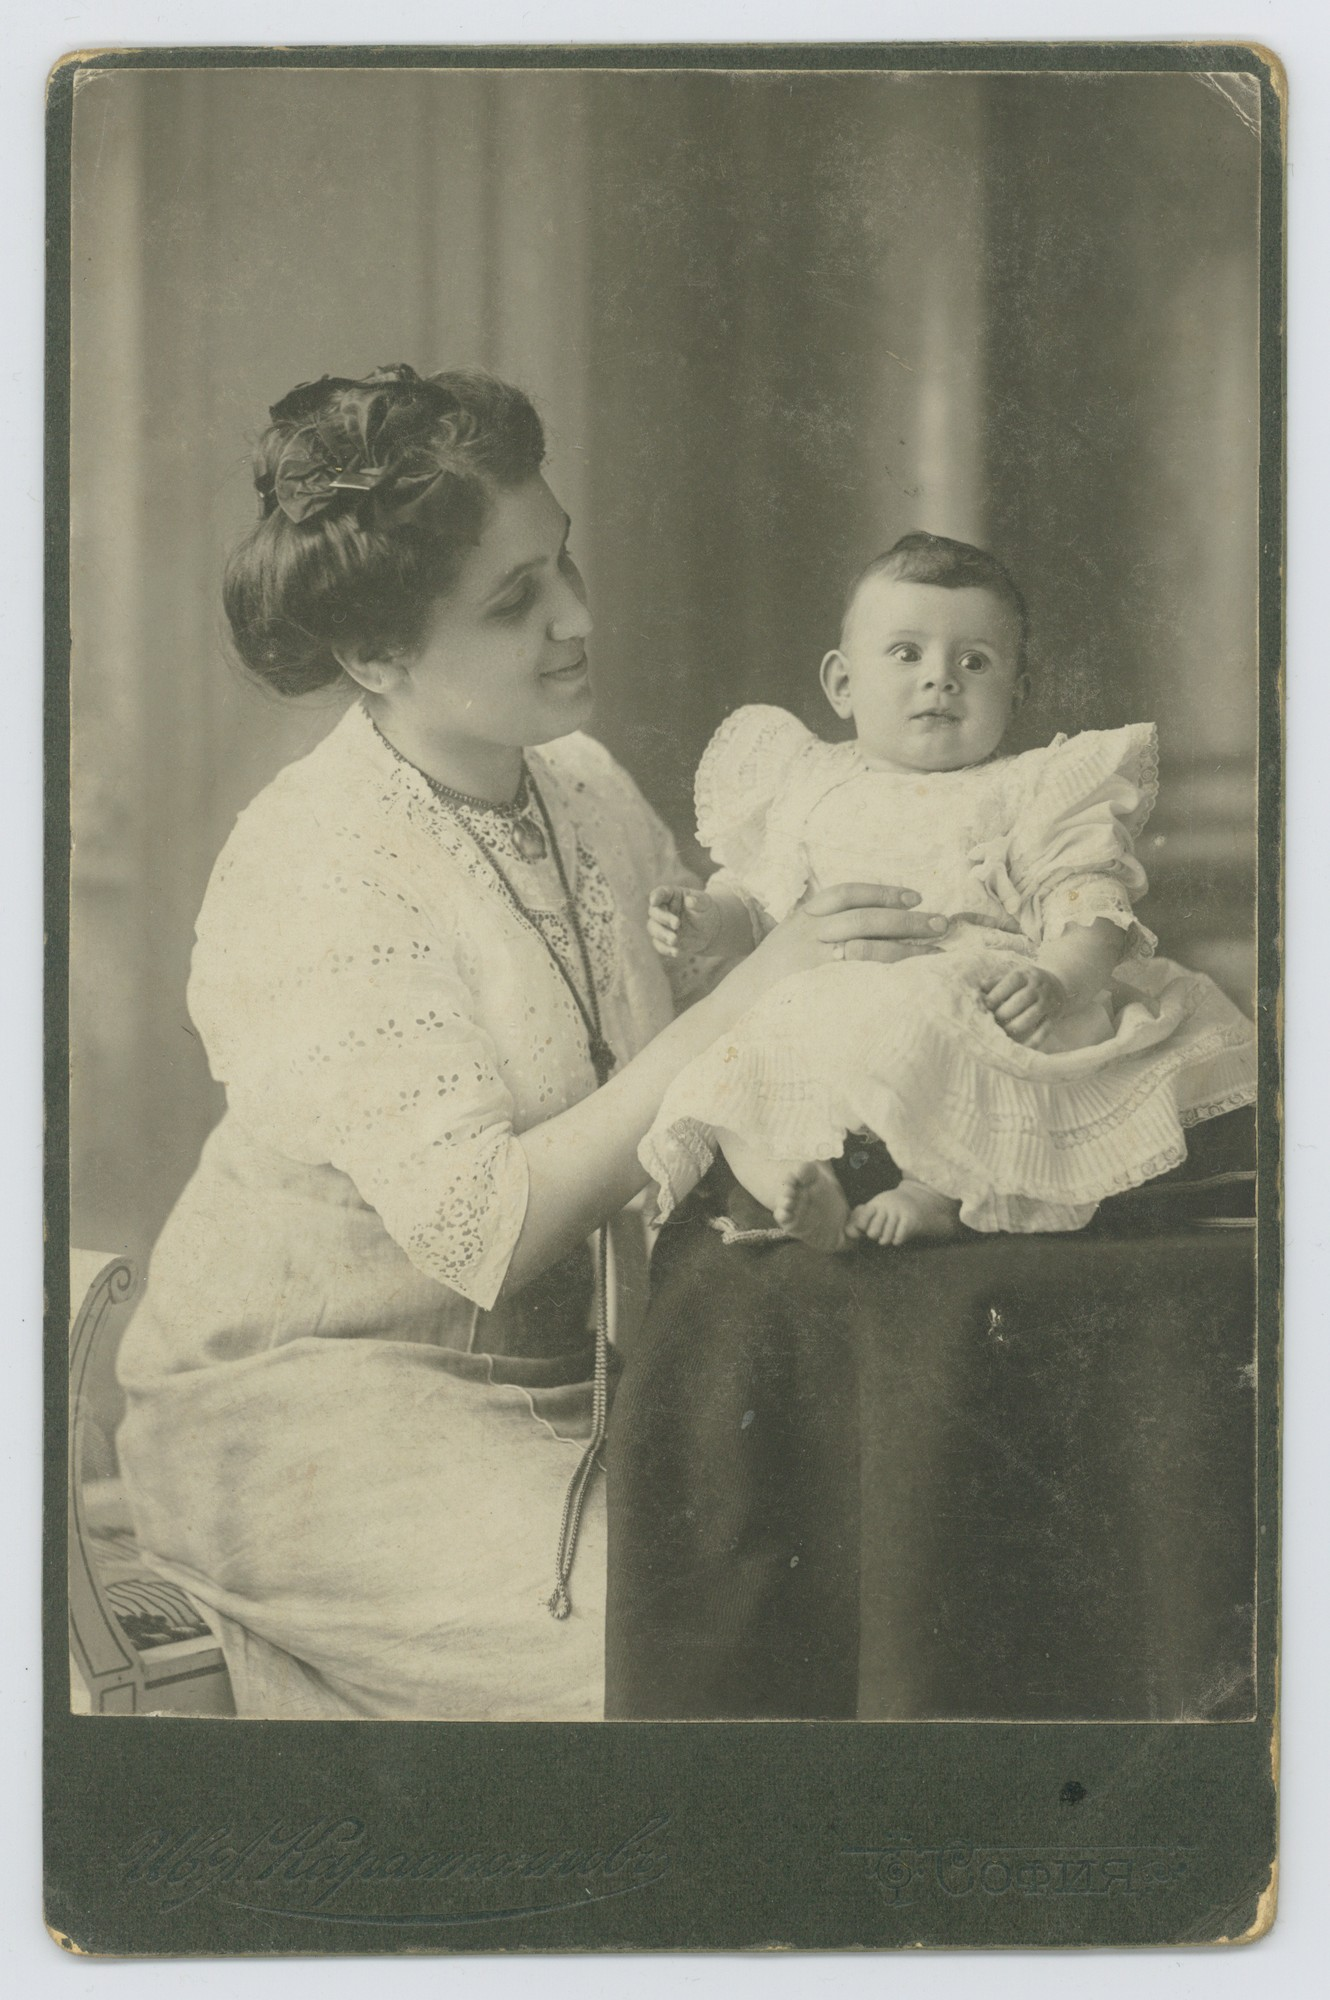 Keti Ankova with her infant, © Scientific Archive of the Bulgarian Academy of Sciences